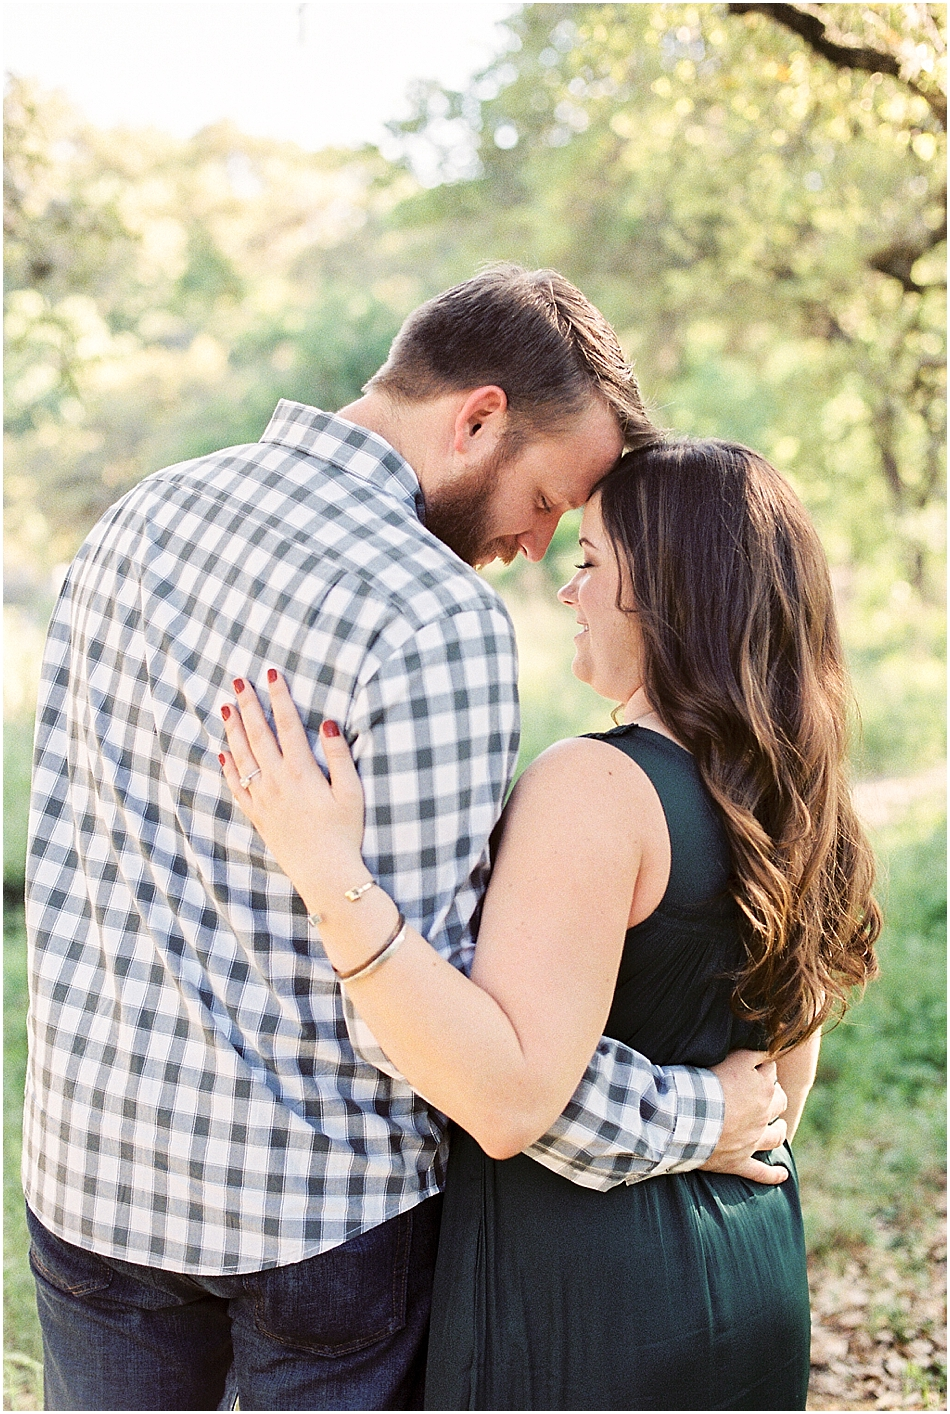 Brooke + Nick | Fine Art Creek Side Engagement | Film | Emilie Anne Photography-10.jpg